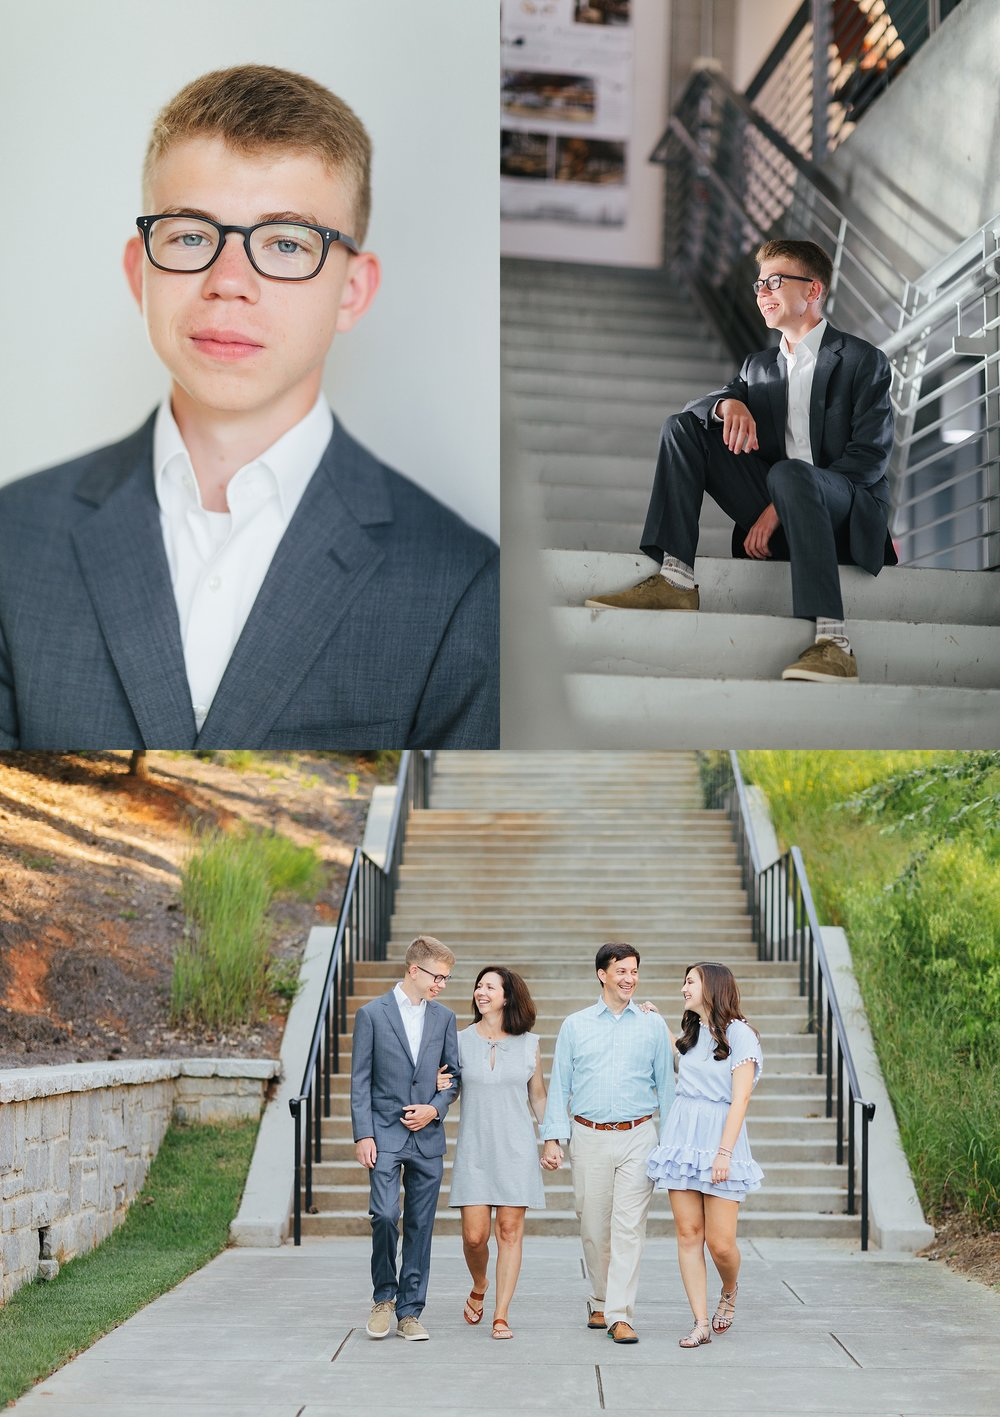 Daniel Harper | Senior Session with Heather Wall Photography